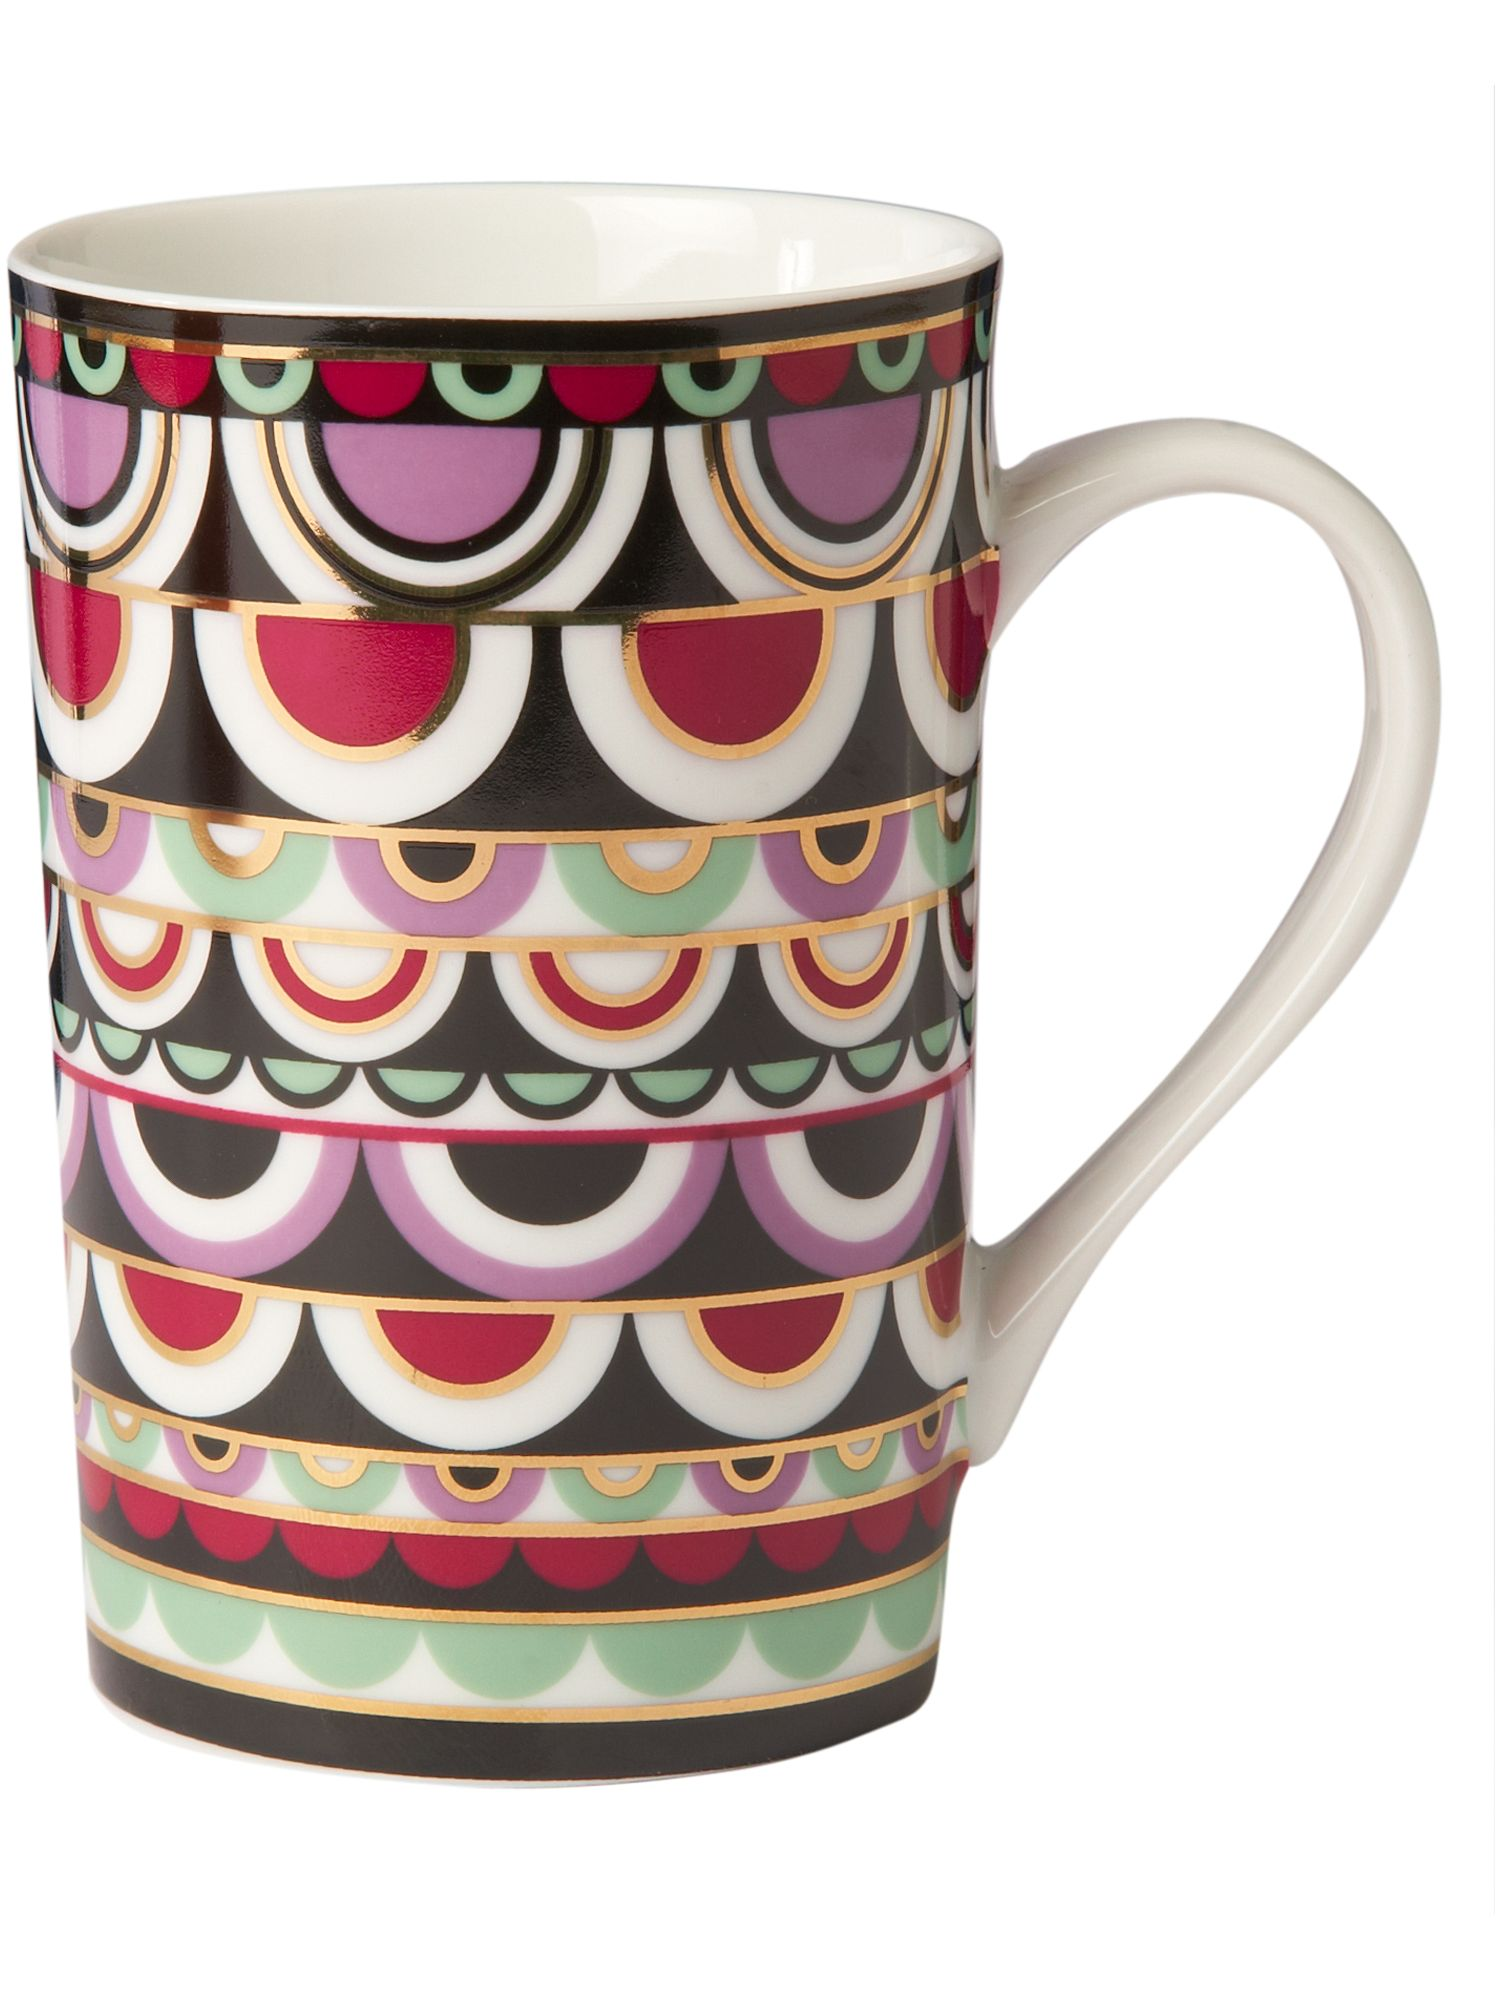 Persia Jewels mug